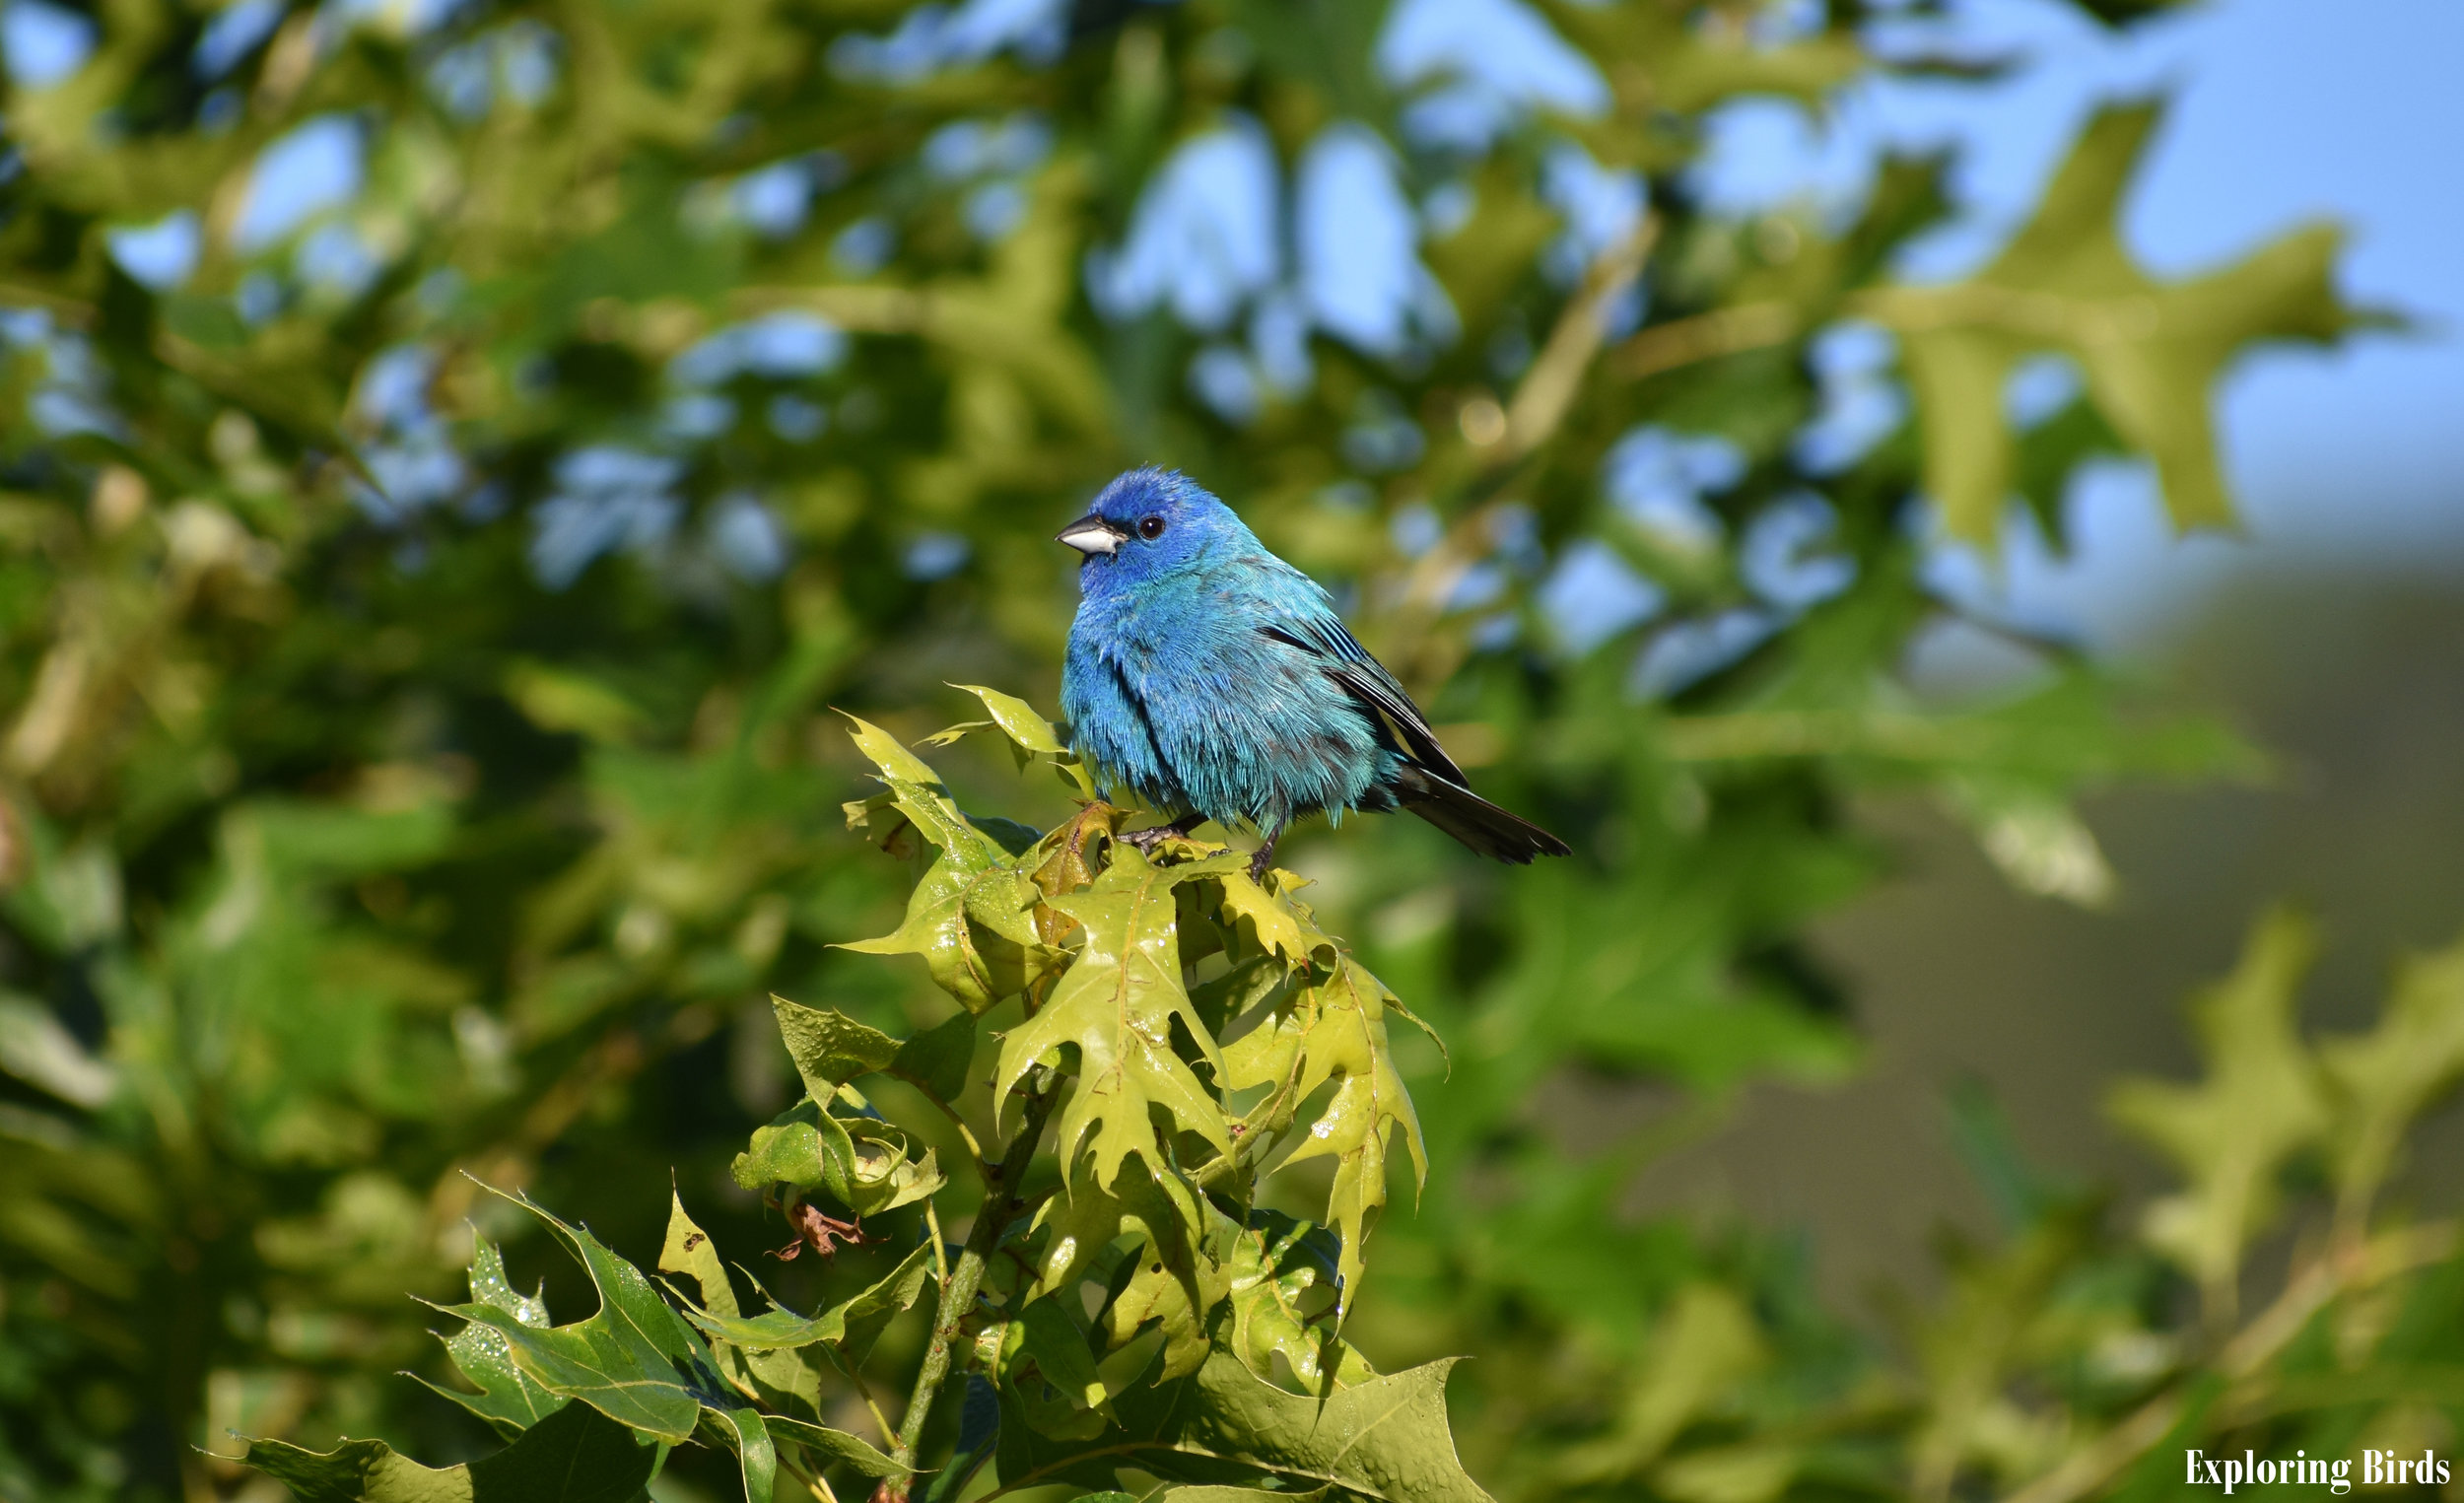 How to Attract Indigo Bunting